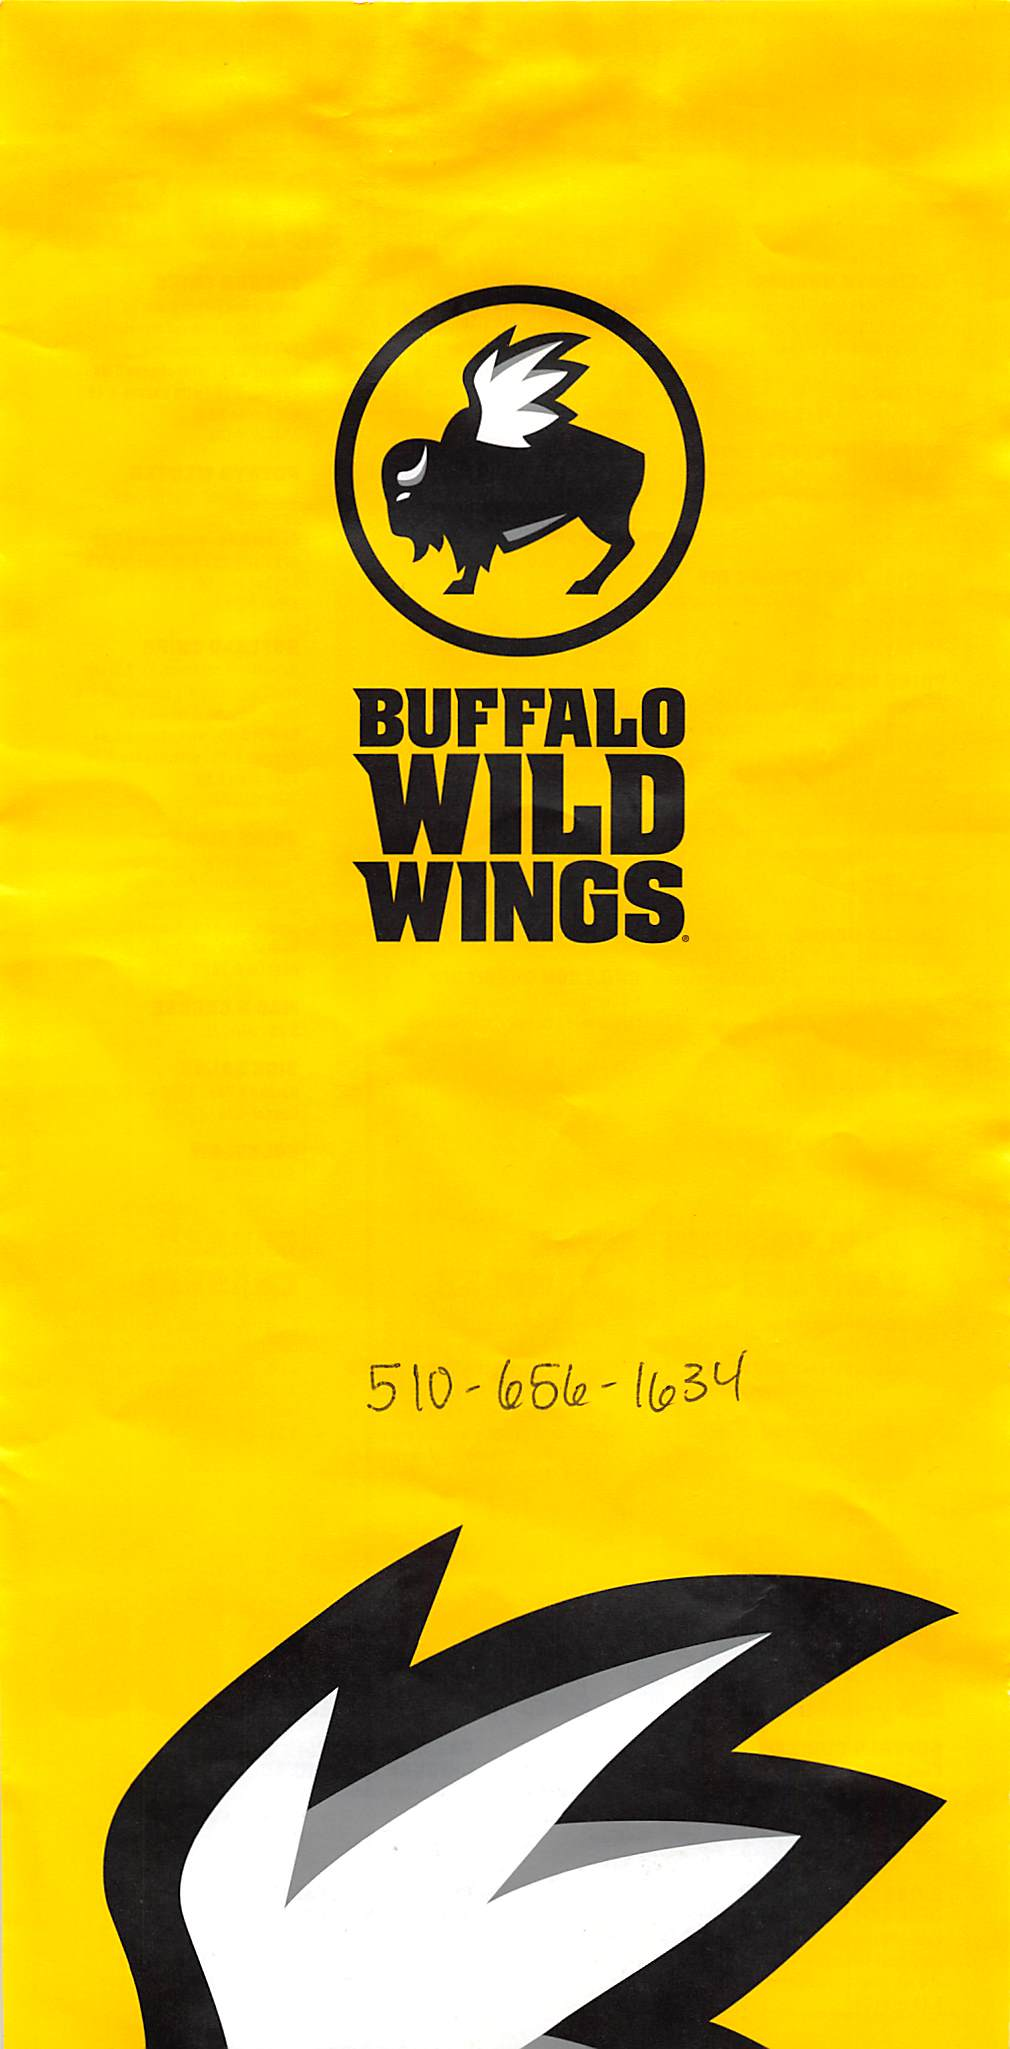 notes on buffalo wild wings Ransom note from buffalo wild wings to view this video please enable javascript, and consider upgrading to a web browser that supports html5 video.